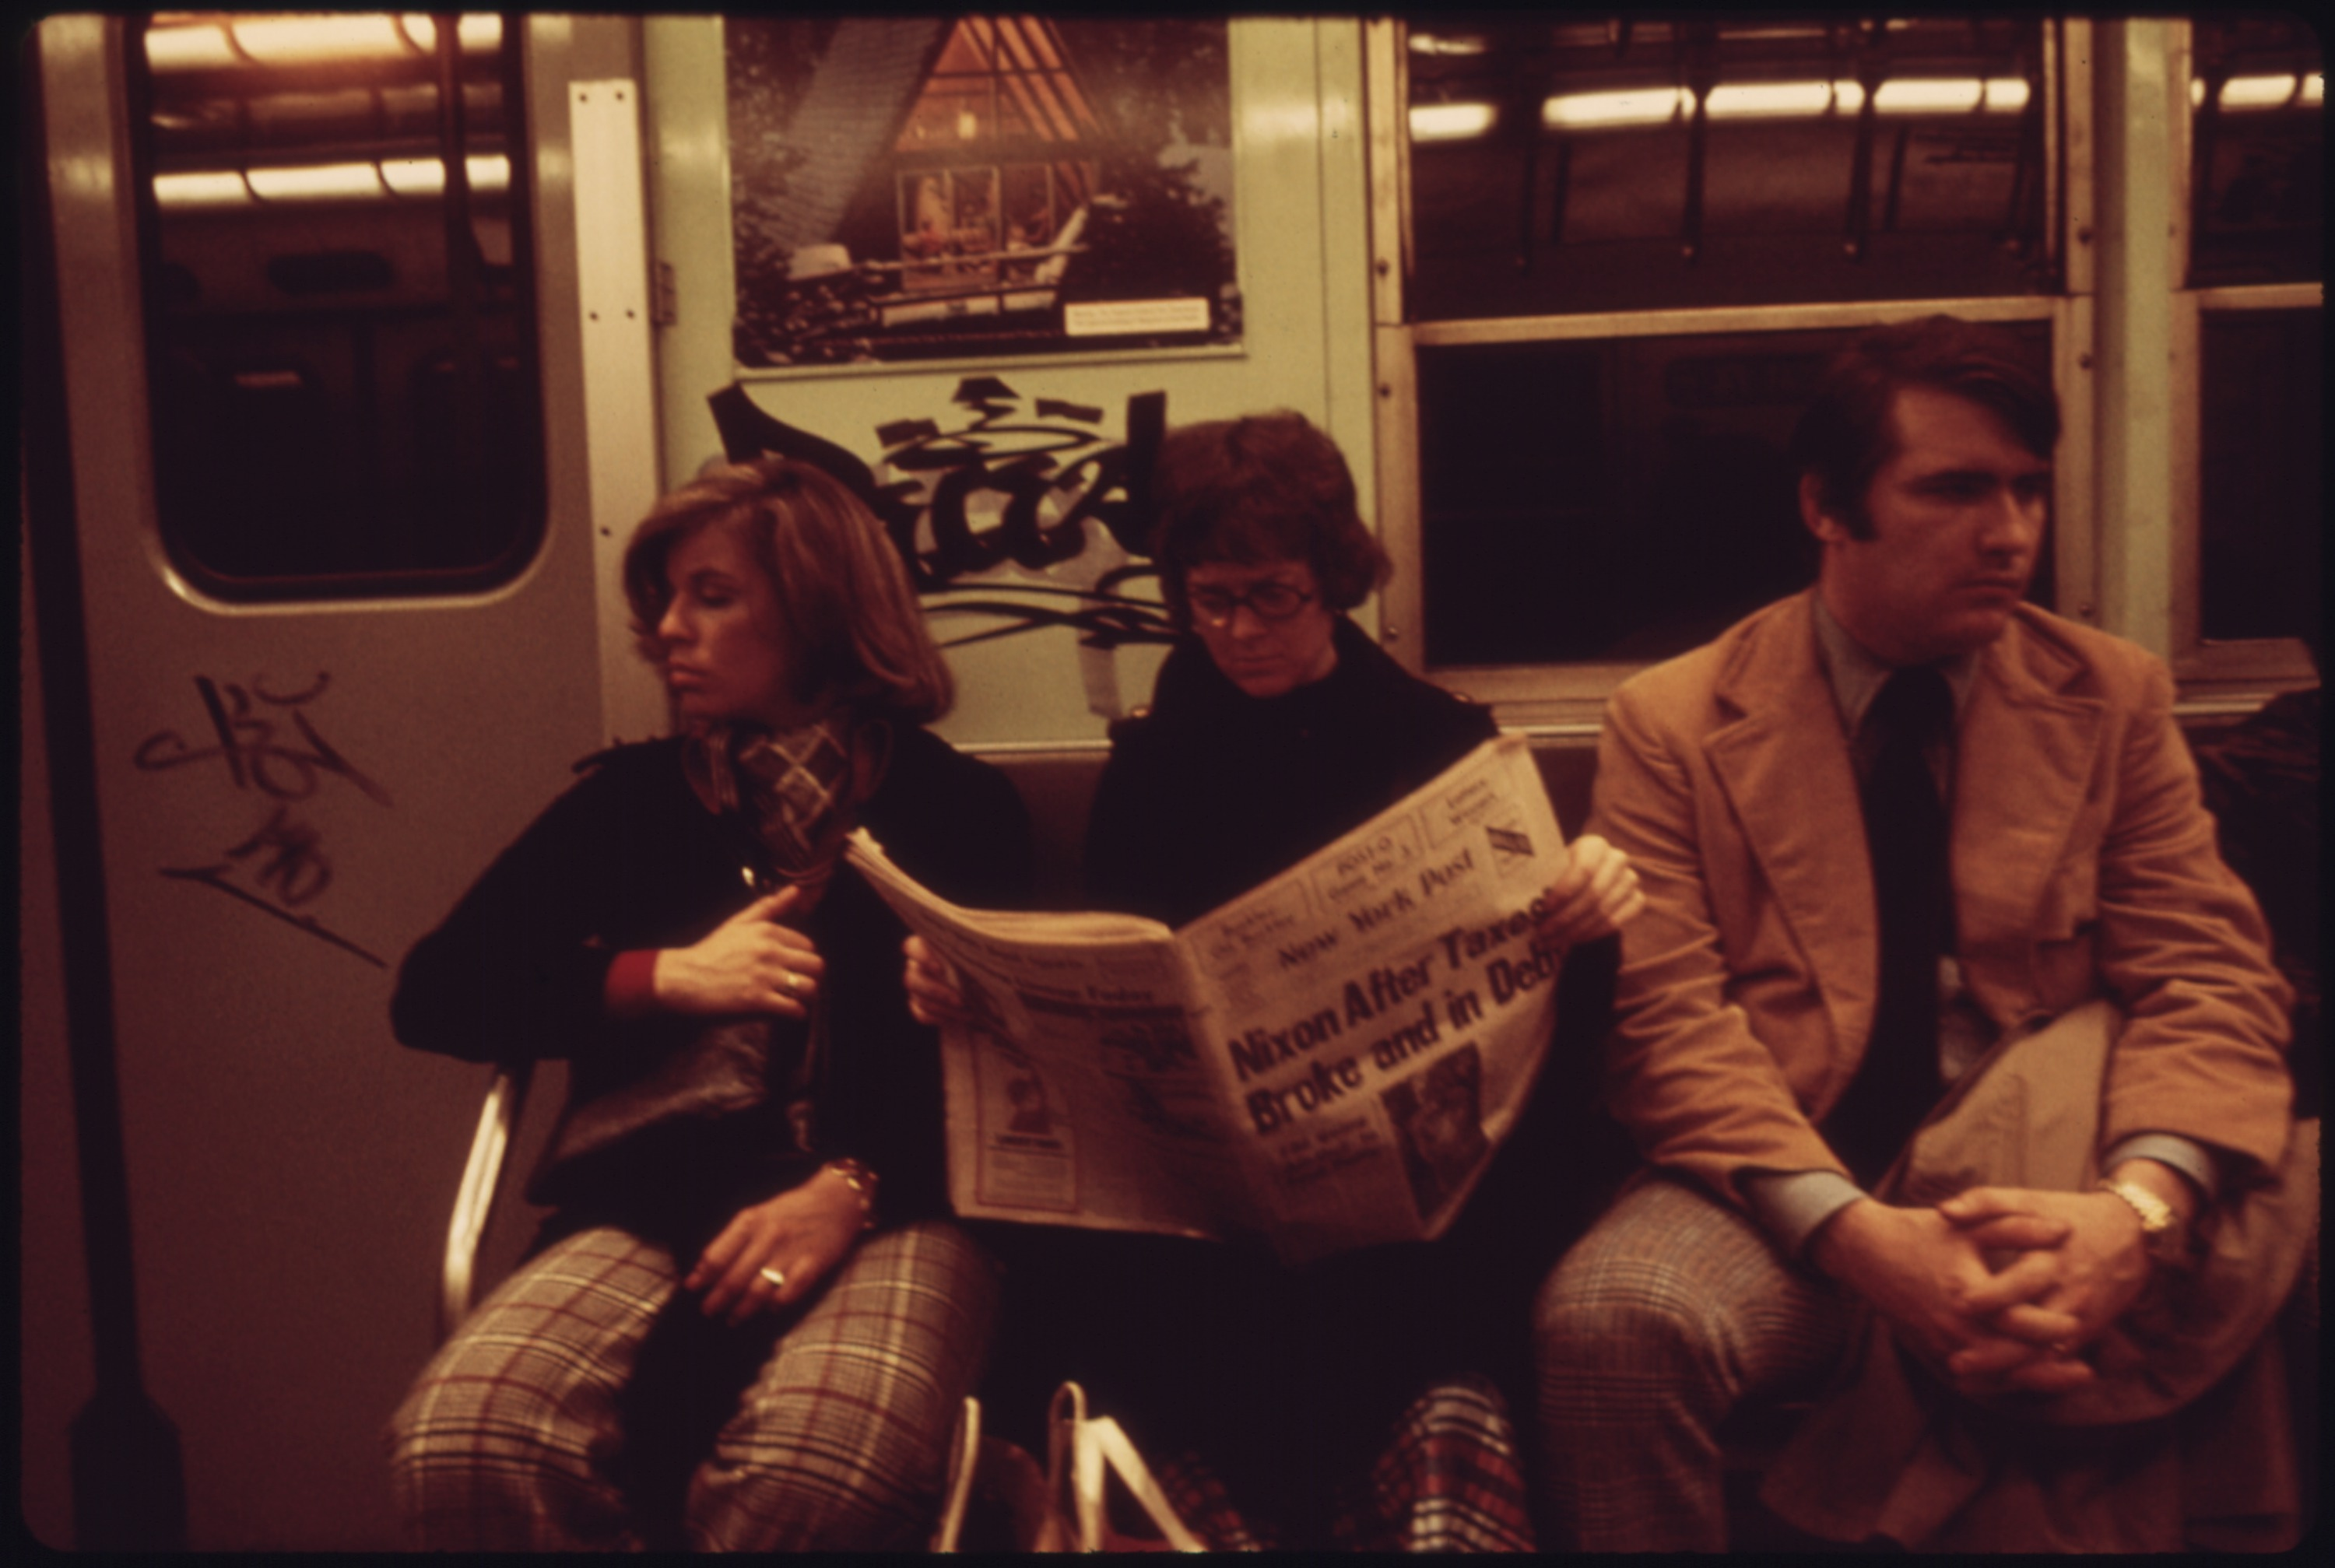 reading newspaper and latest information Every time i hold a big newspaper in my hands i'm surprised at how inferior it is compared to reading news on the web newspapers have problems with references if i find an interesting news story on the front page, it's a mess finding the full article in there.